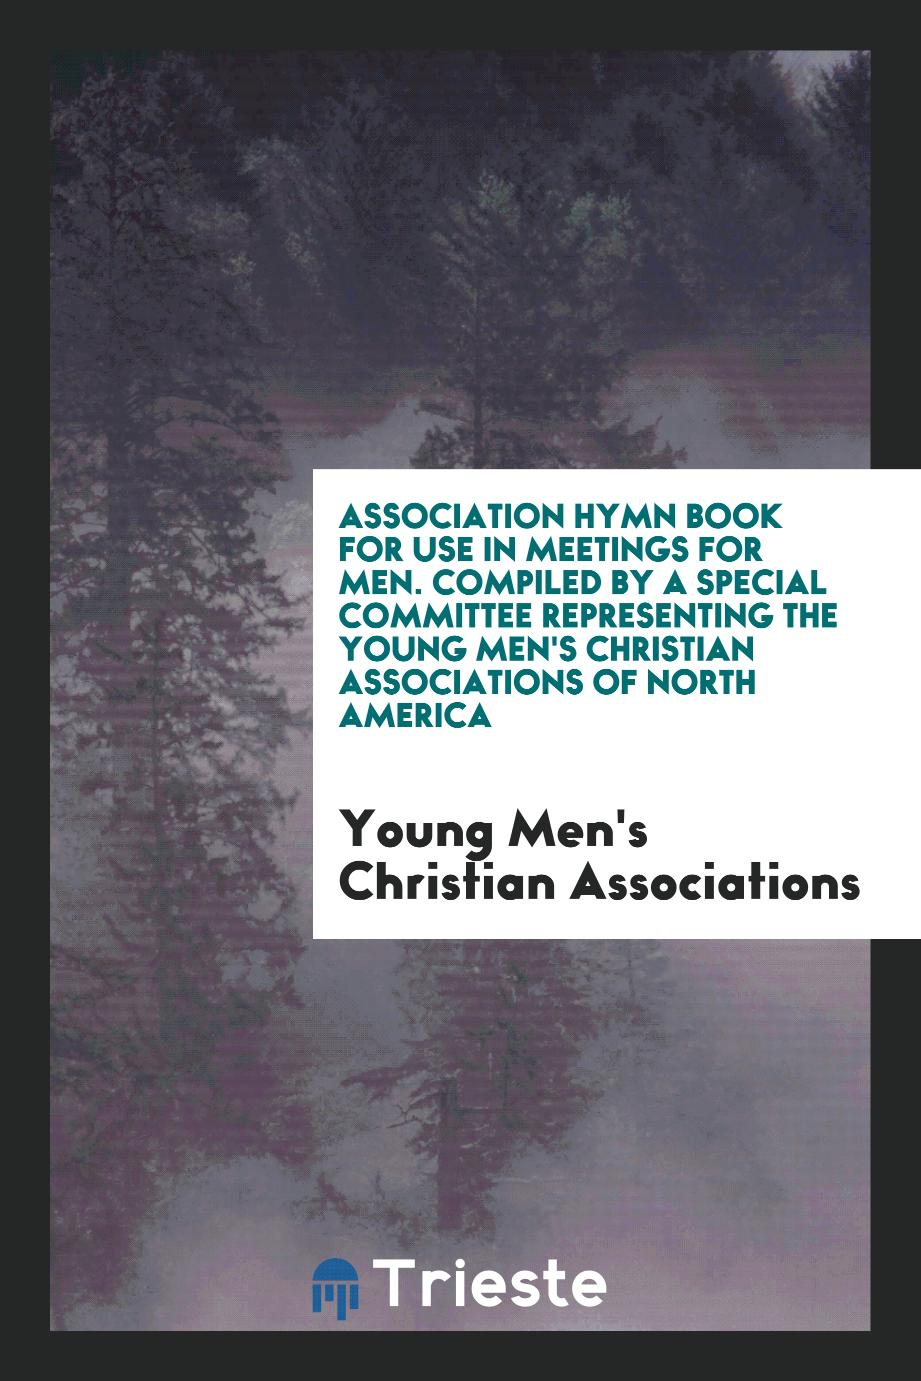 Association Hymn Book for Use in Meetings for Men. Compiled by a Special Committee Representing the Young Men's Christian Associations of North America